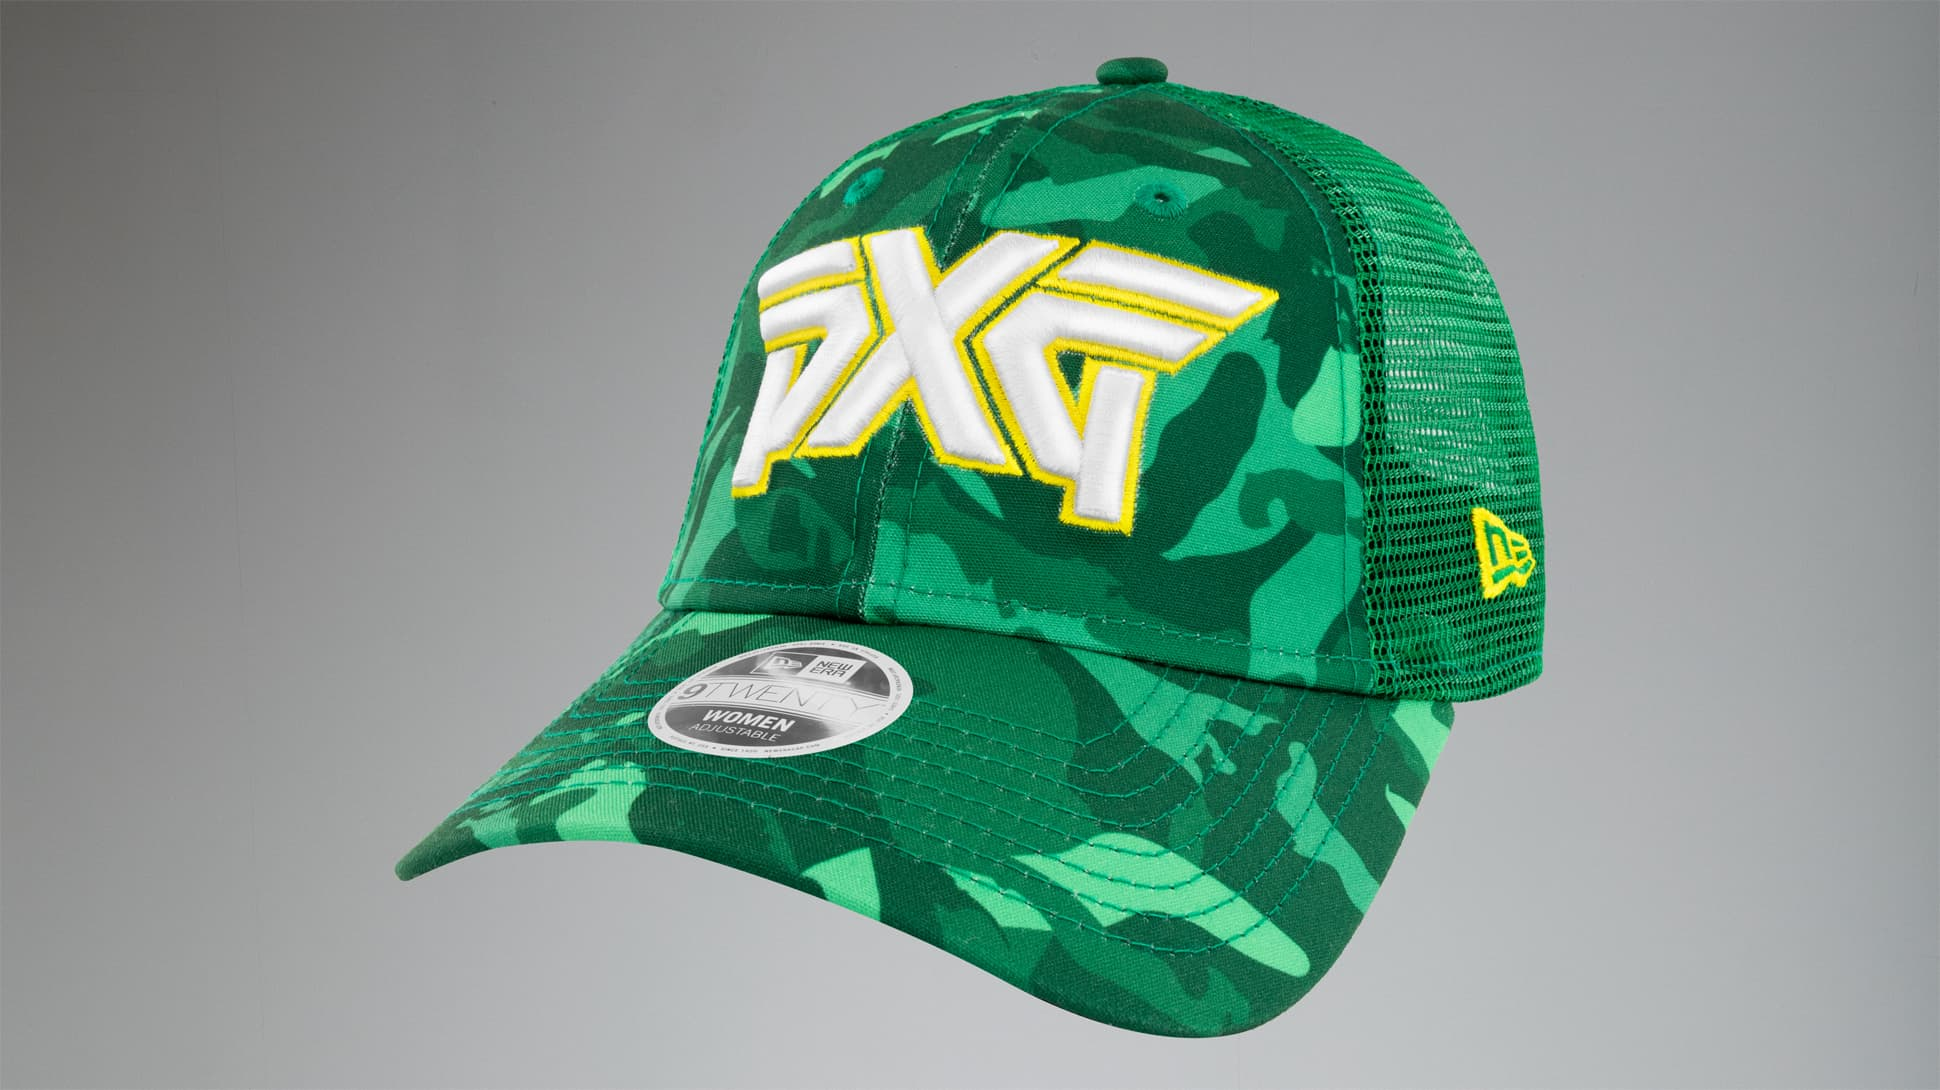 Women's Phoenix Fairway Camo™ 9TWENTY Trucker Cap Image 1